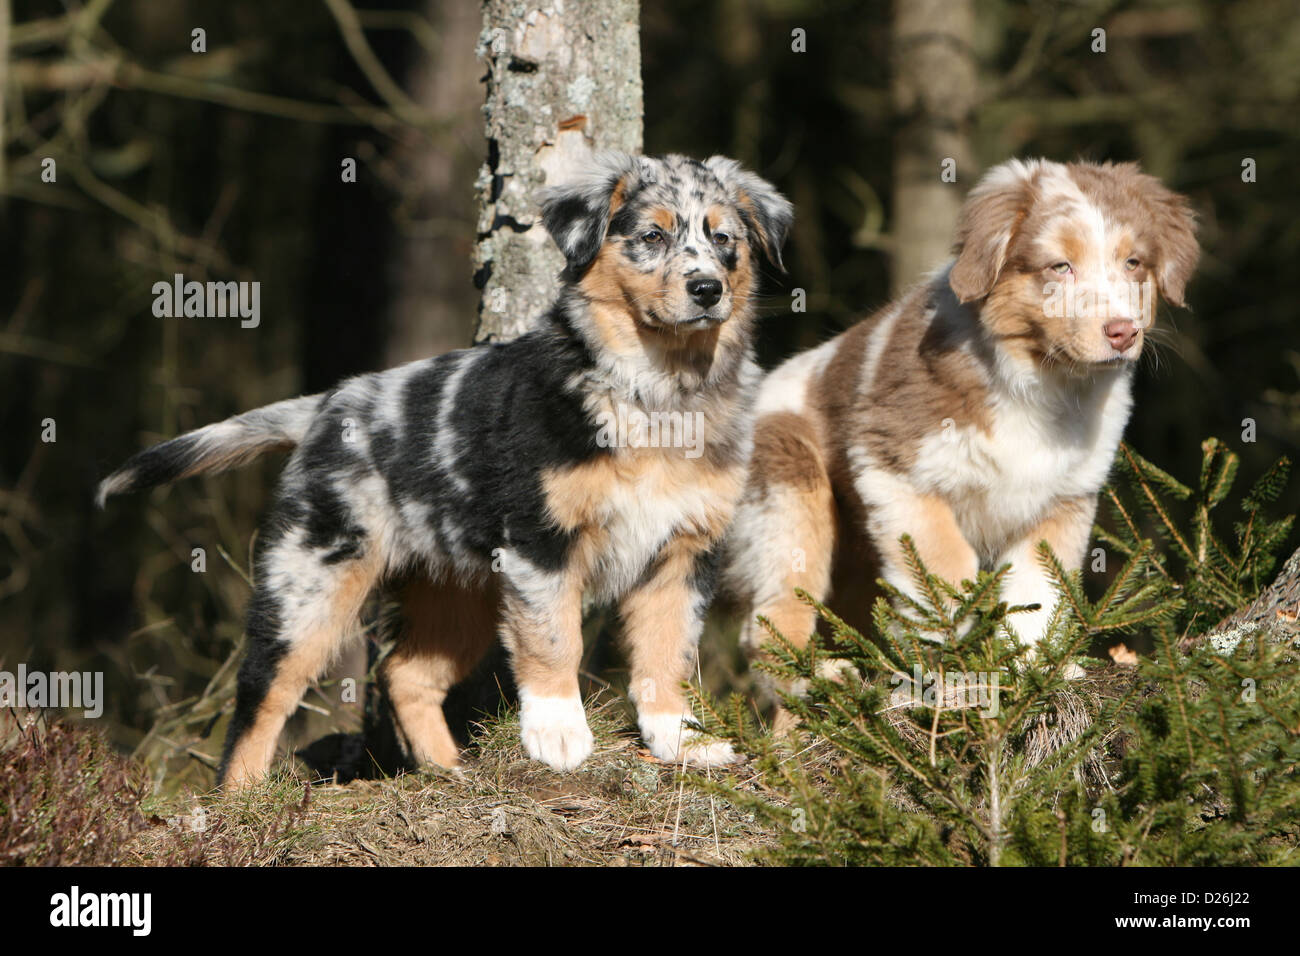 Blue Merle Australian Shepherd Puppies High Resolution Stock Photography And Images Alamy